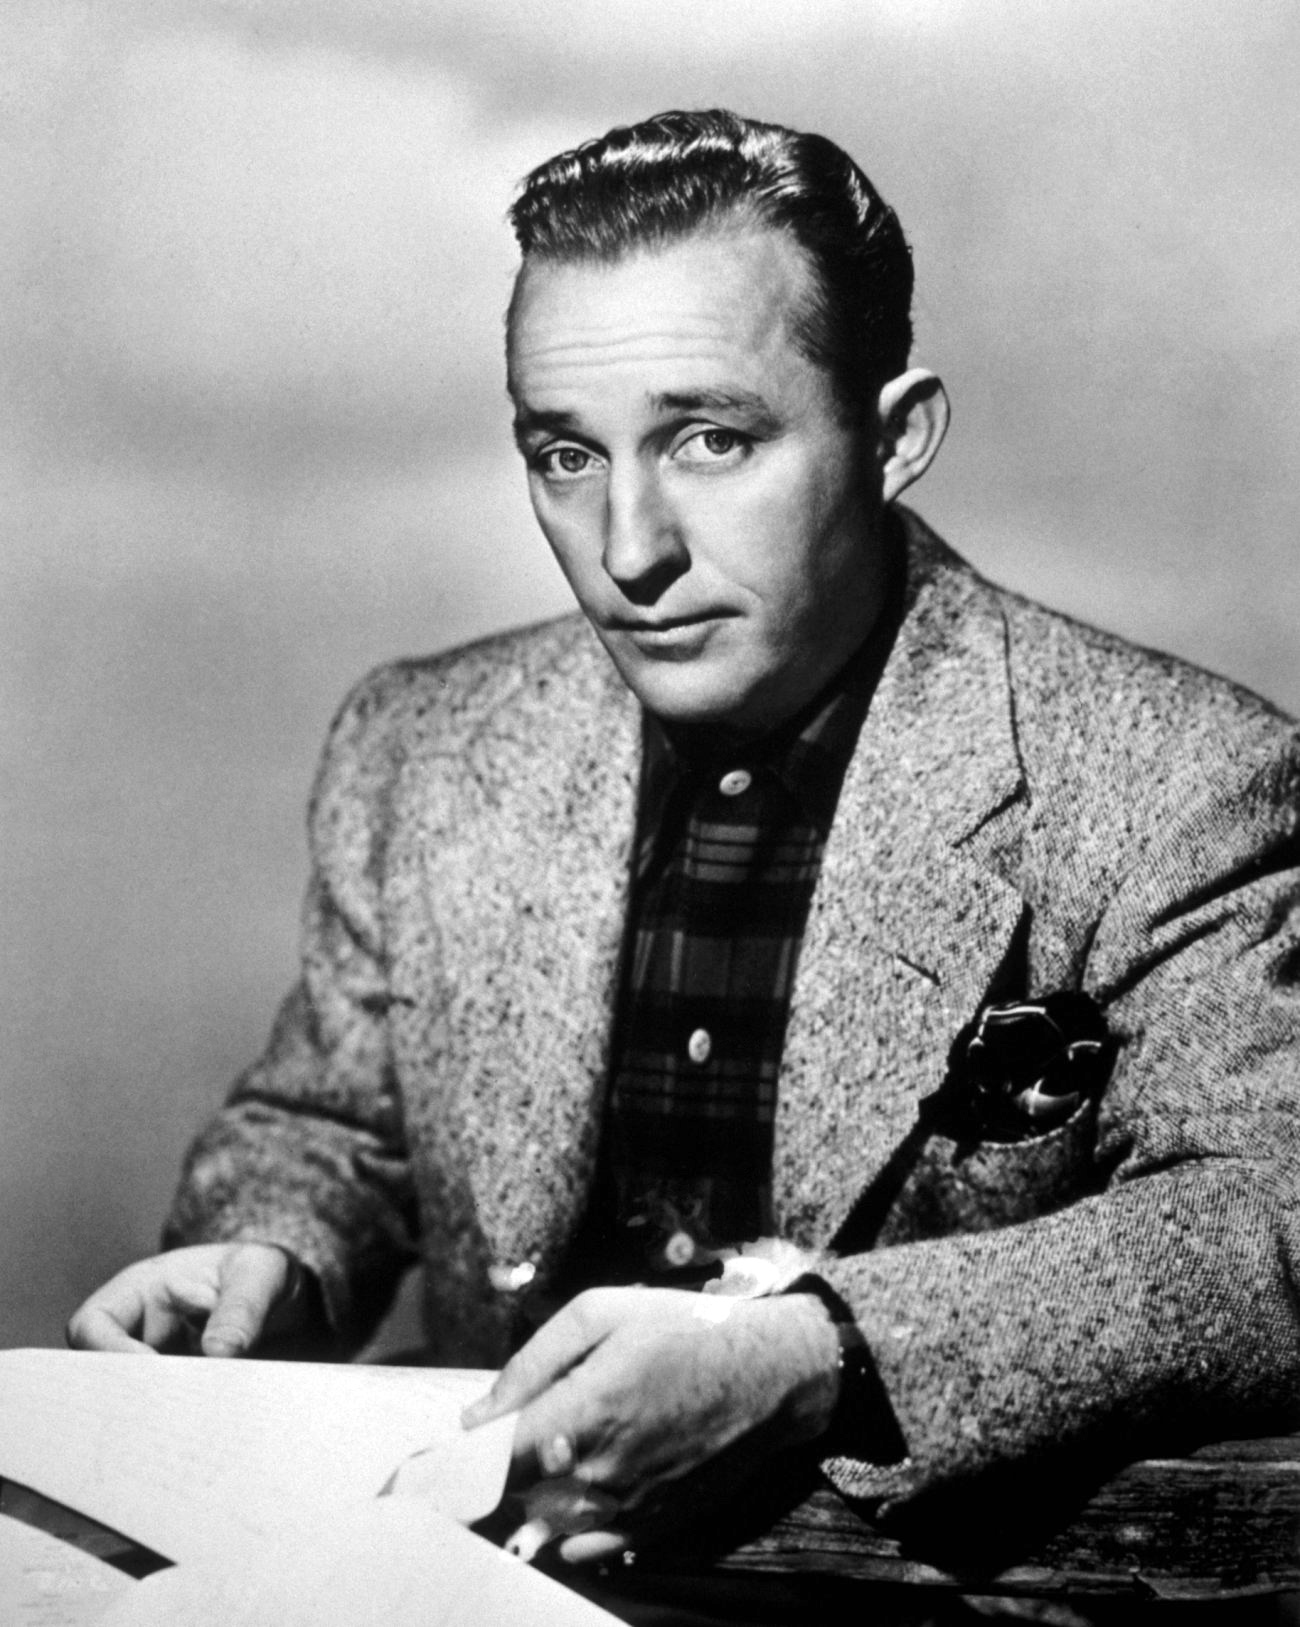 Bing Crosby and Connie Boswell - Basin Street Blues / Bob White